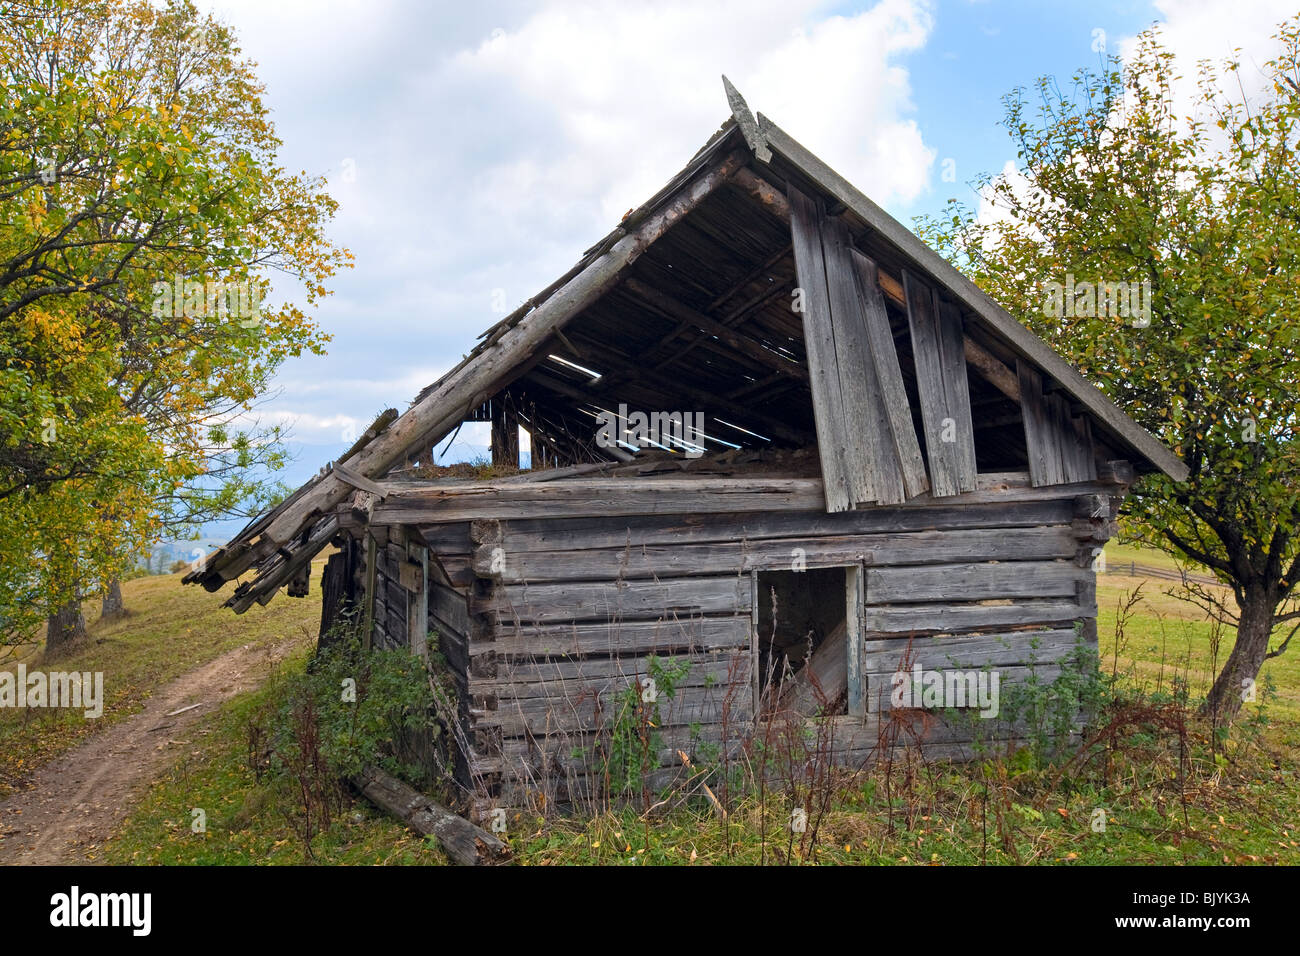 Ruined wood shed on mountain glade - Stock Image